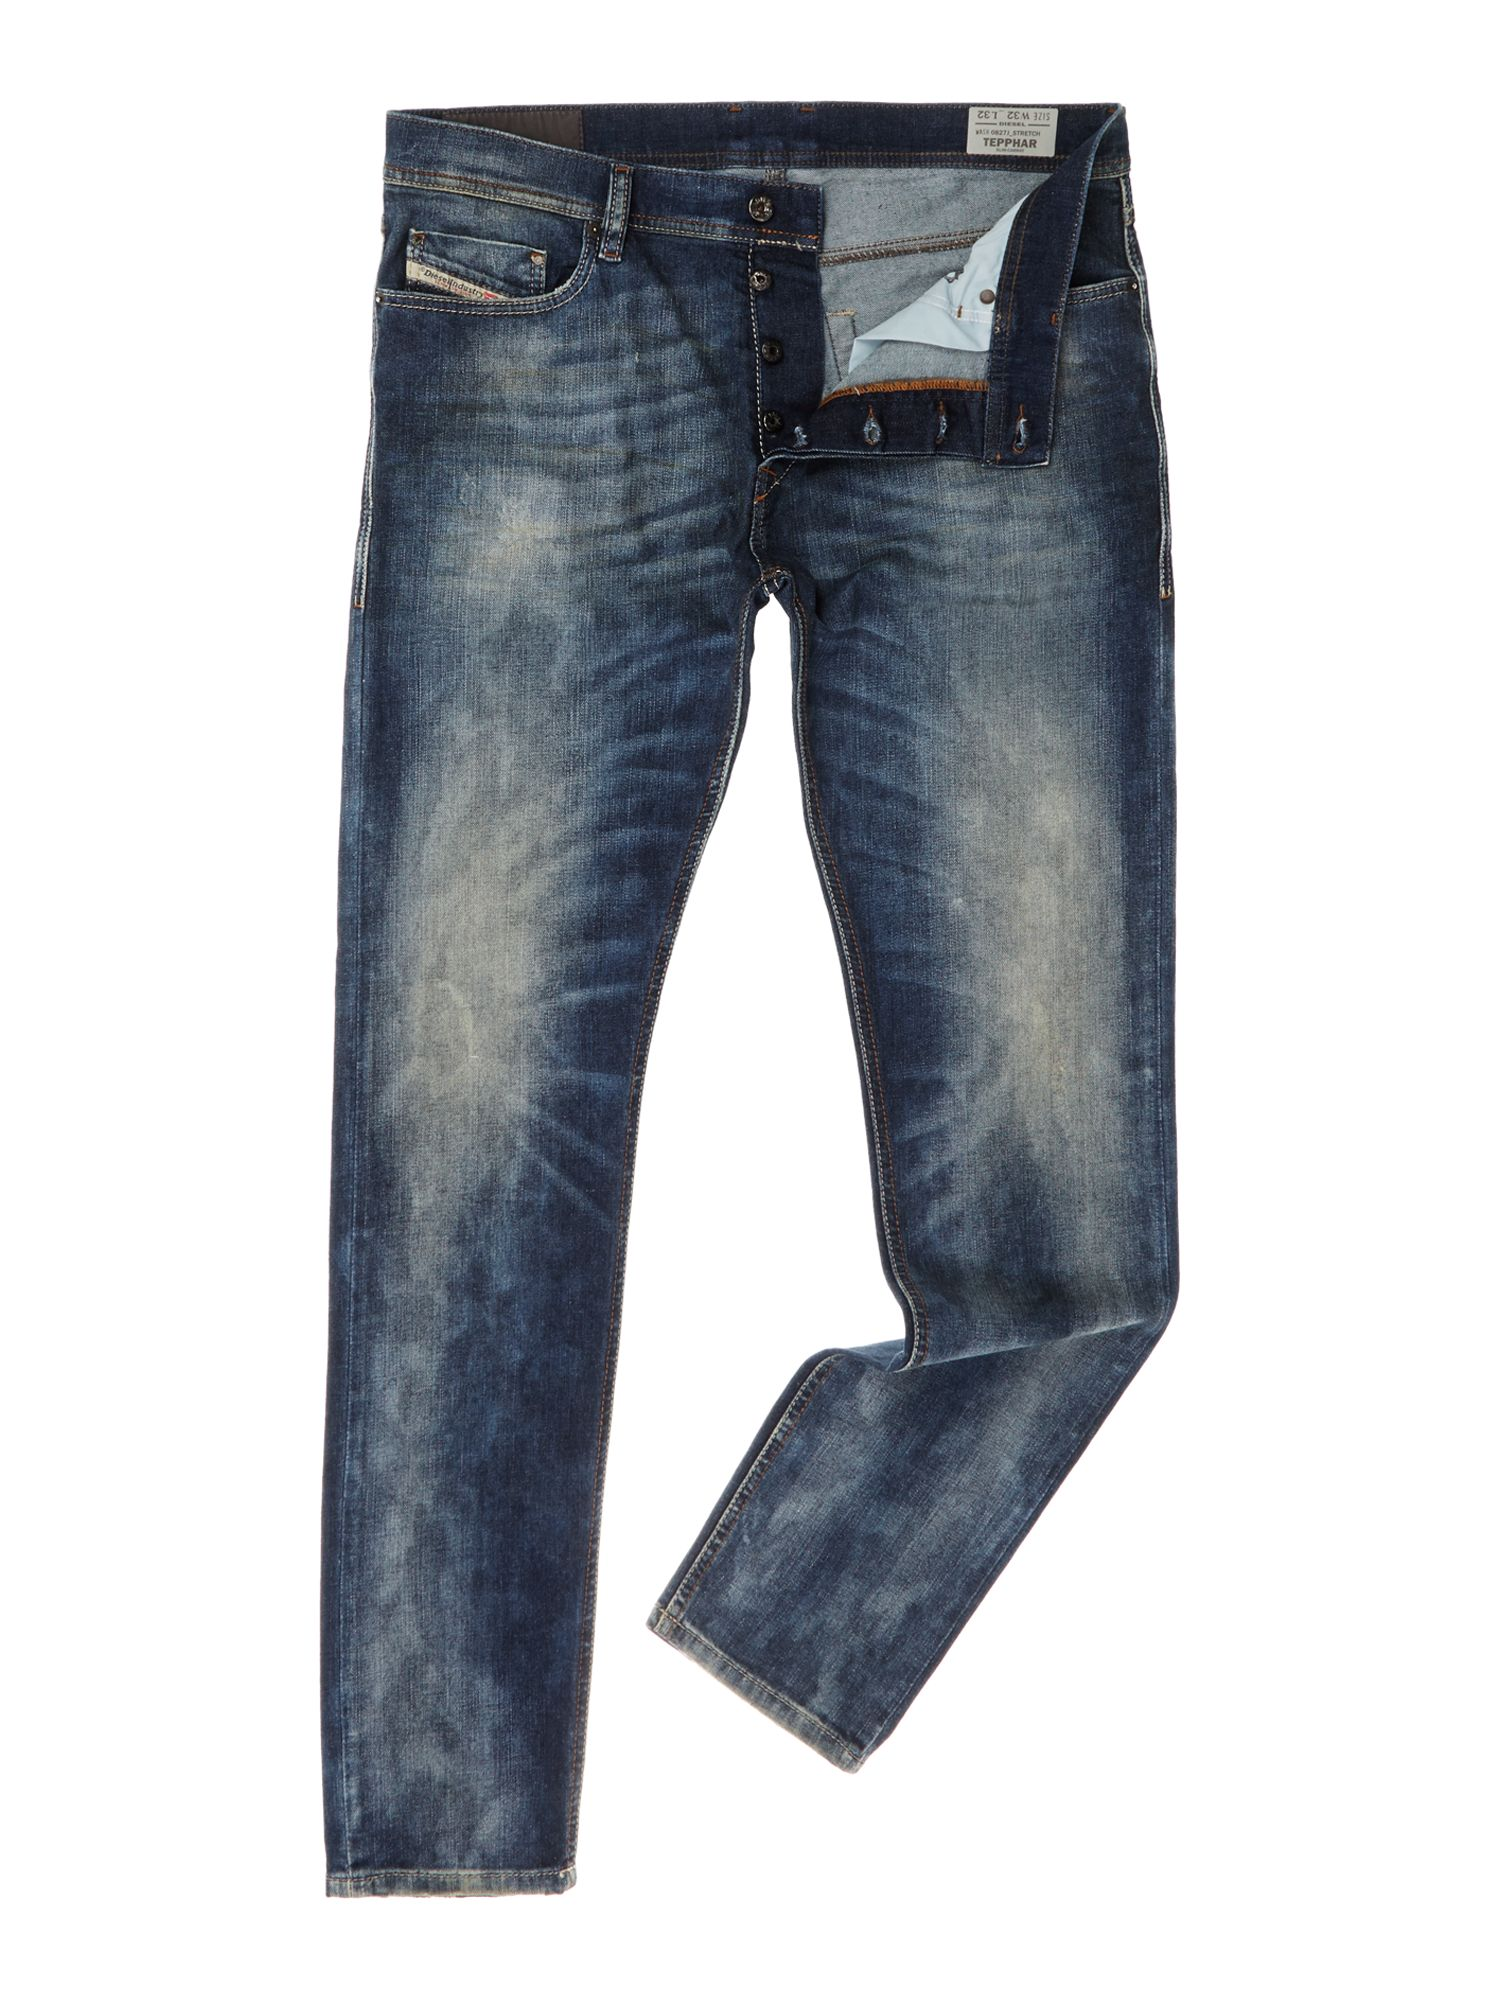 Tepphar 0827J slim fit jean